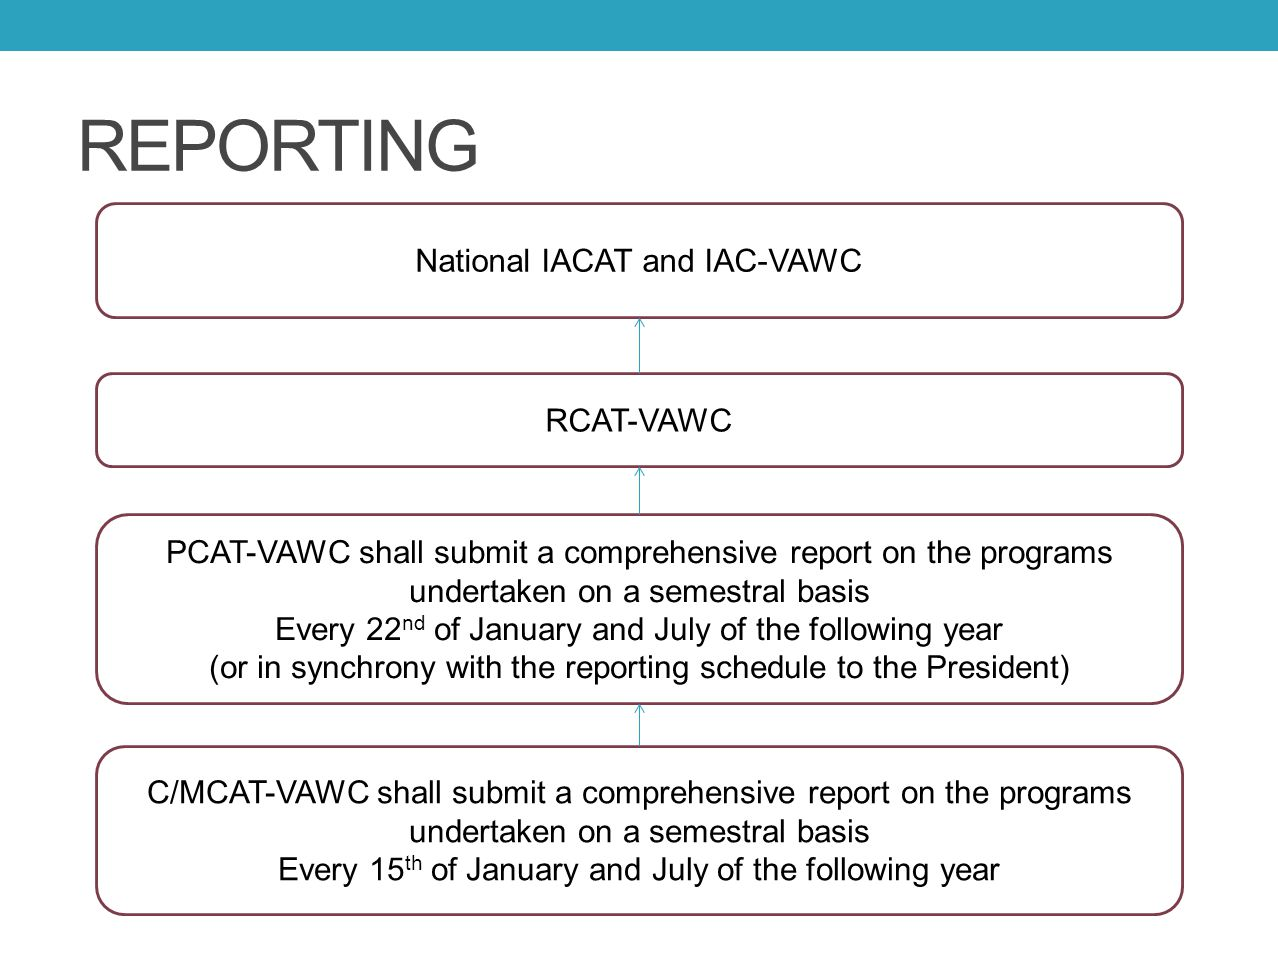 REPORTING C/MCAT-VAWC shall submit a comprehensive report on the programs undertaken on a semestral basis Every 15 th of January and July of the follo